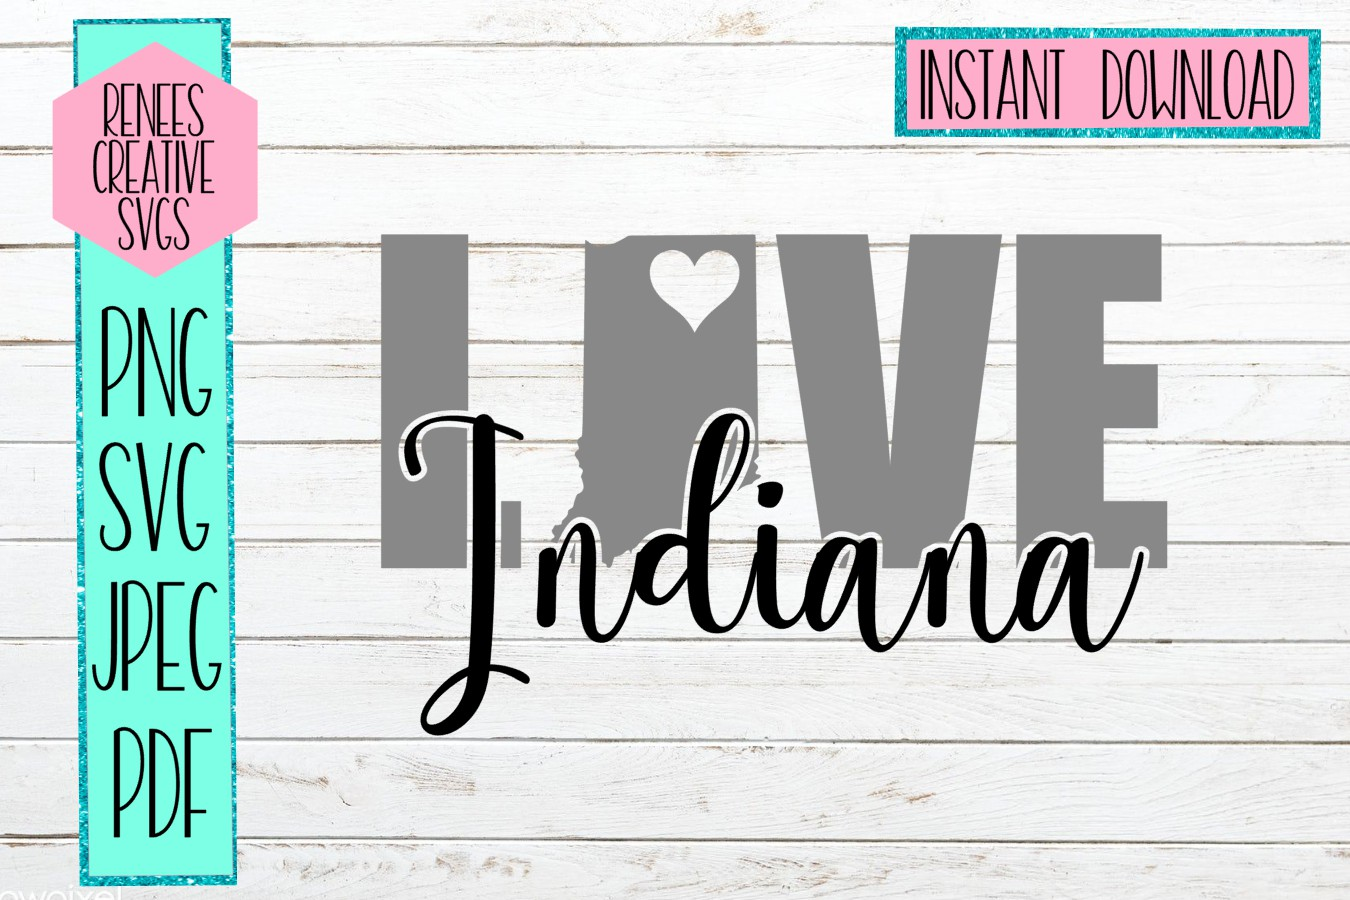 Indiana Love Cutting File Graphic By Reneescreativesvgs